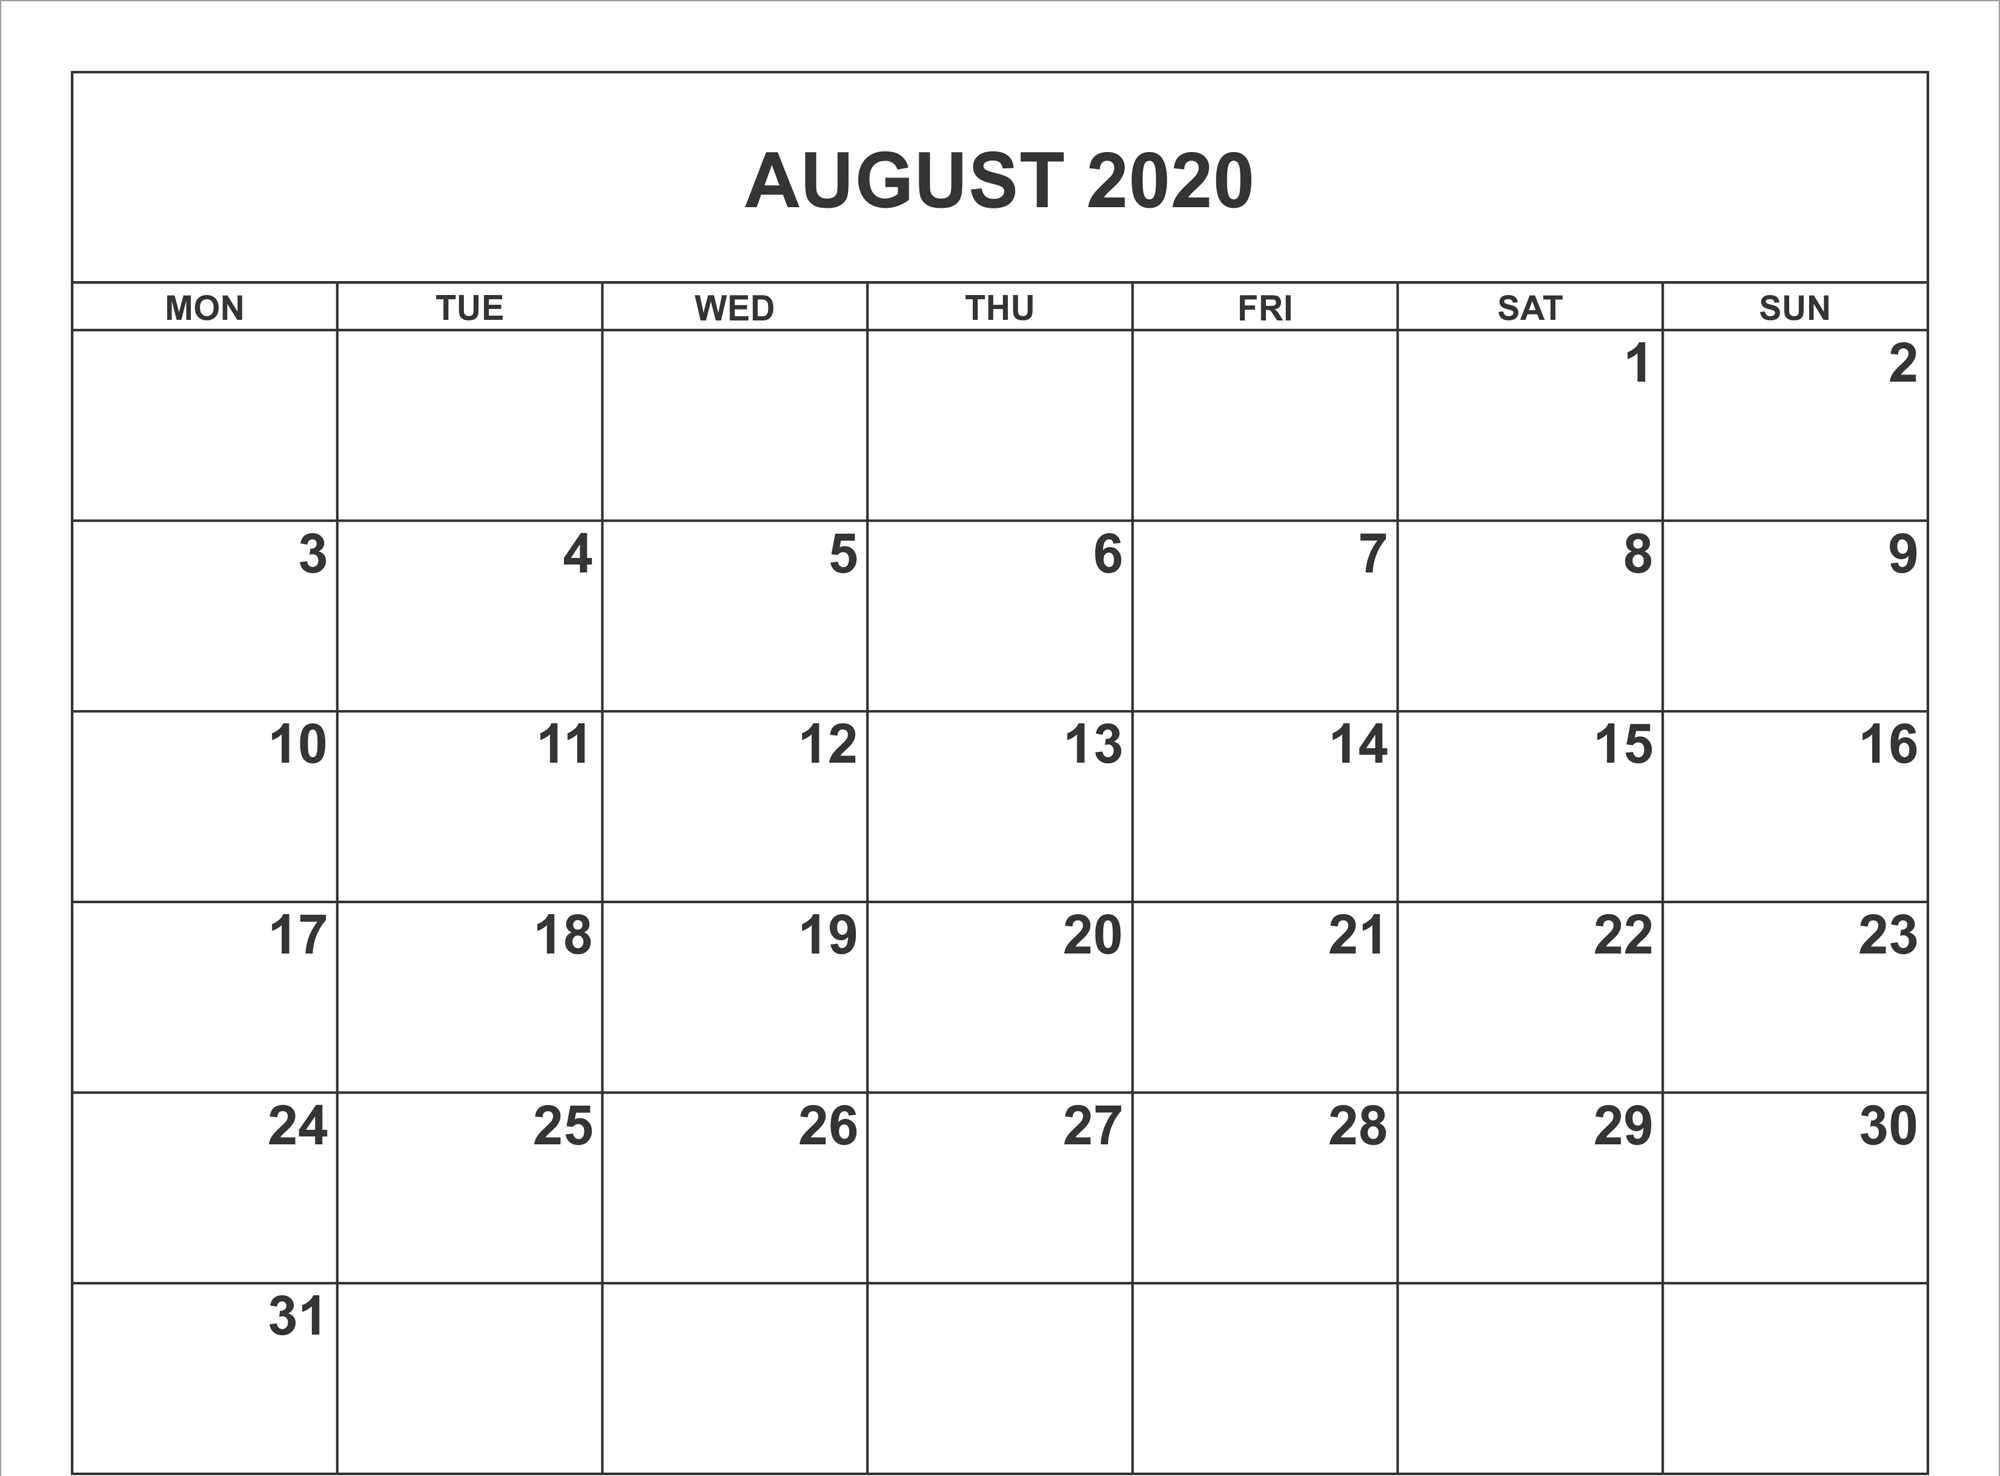 Calendario 2020 Word.August 2020 Calendar Pdf Word Excel Template